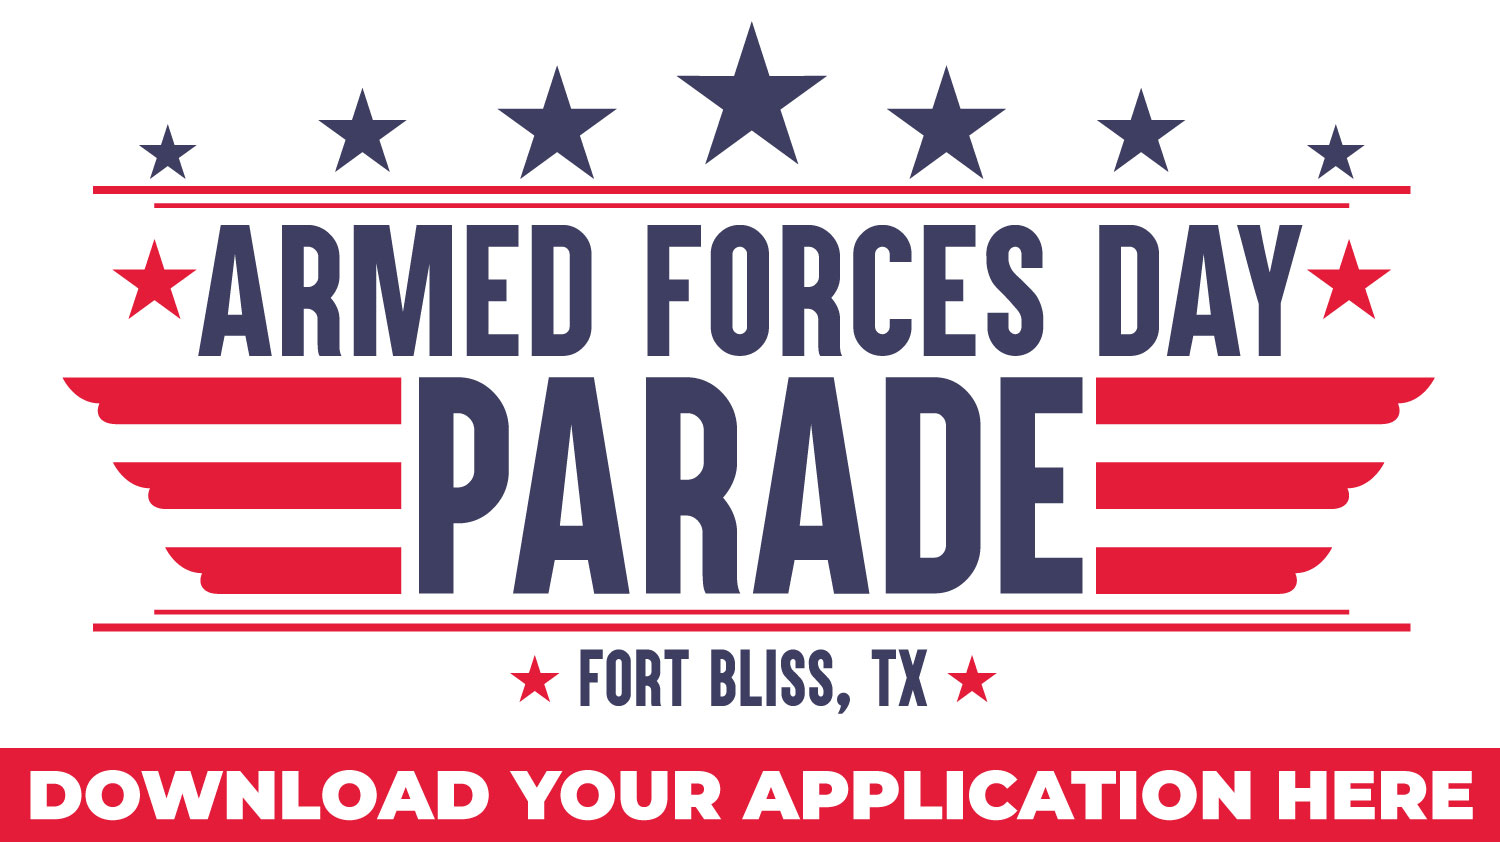 2020 Armed Forces Day Parade Applications